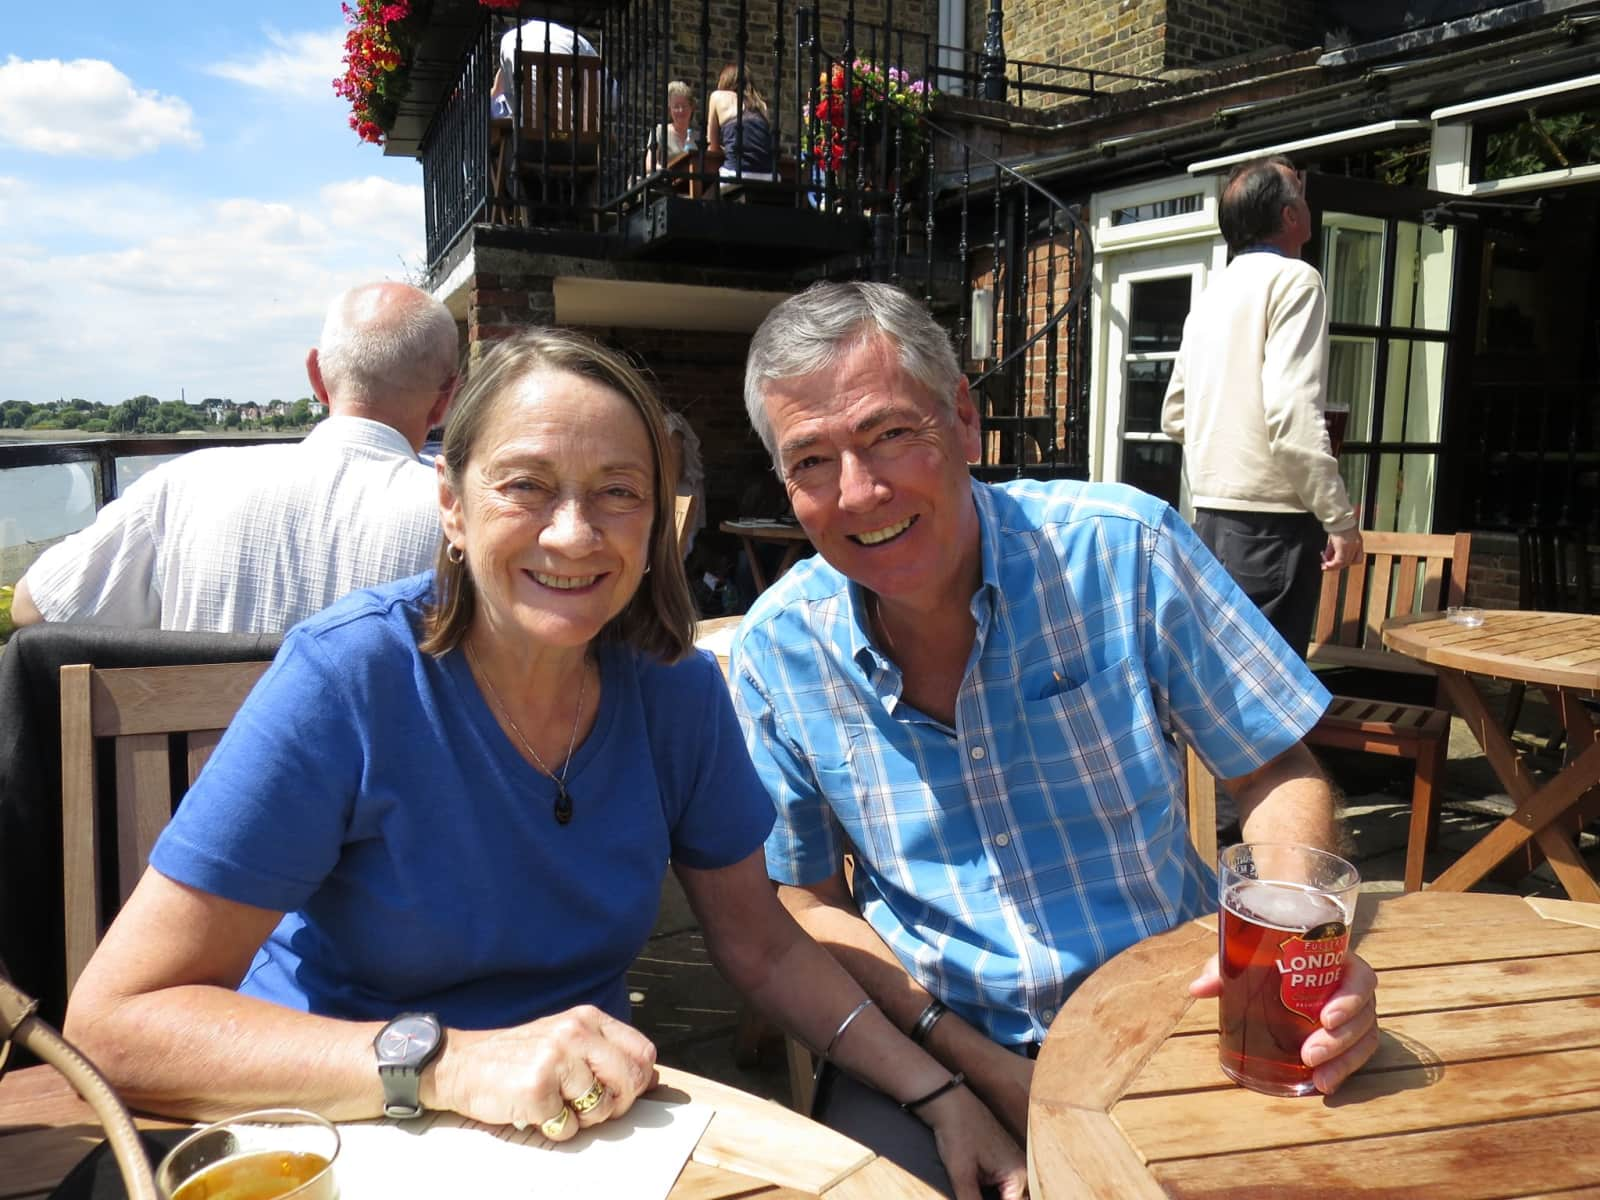 Philip & Diane from London, United Kingdom